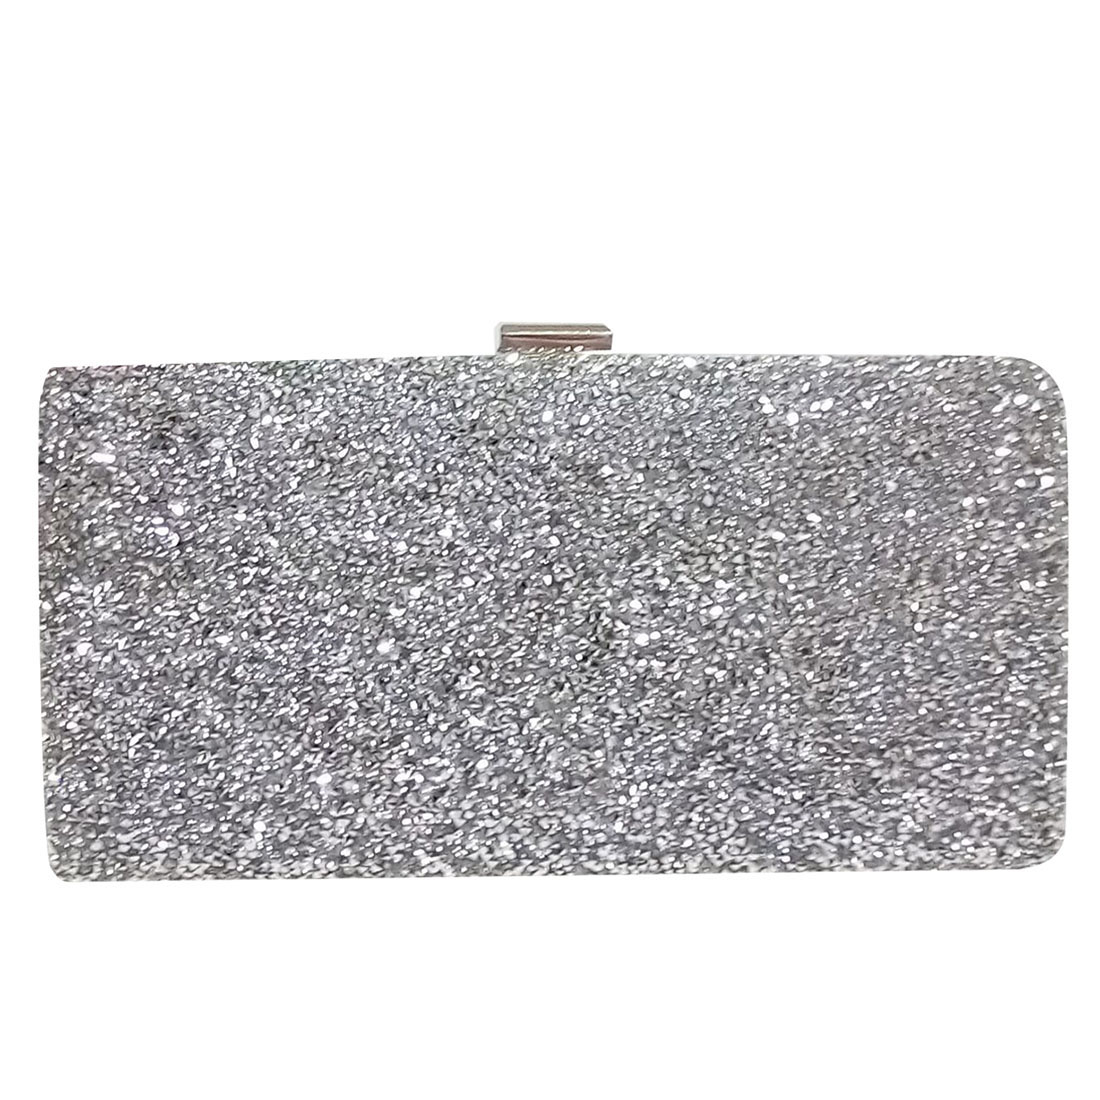 Hot Fashion Woman Evening bag Women Diamond Rhinestone Clutch Crystal Day Clutch Wallet Wedding Purse Party Banquet fashion hot new aotian glitter sequins spangle handbag party evening clutch bag wallet purse dropshipping 72 24